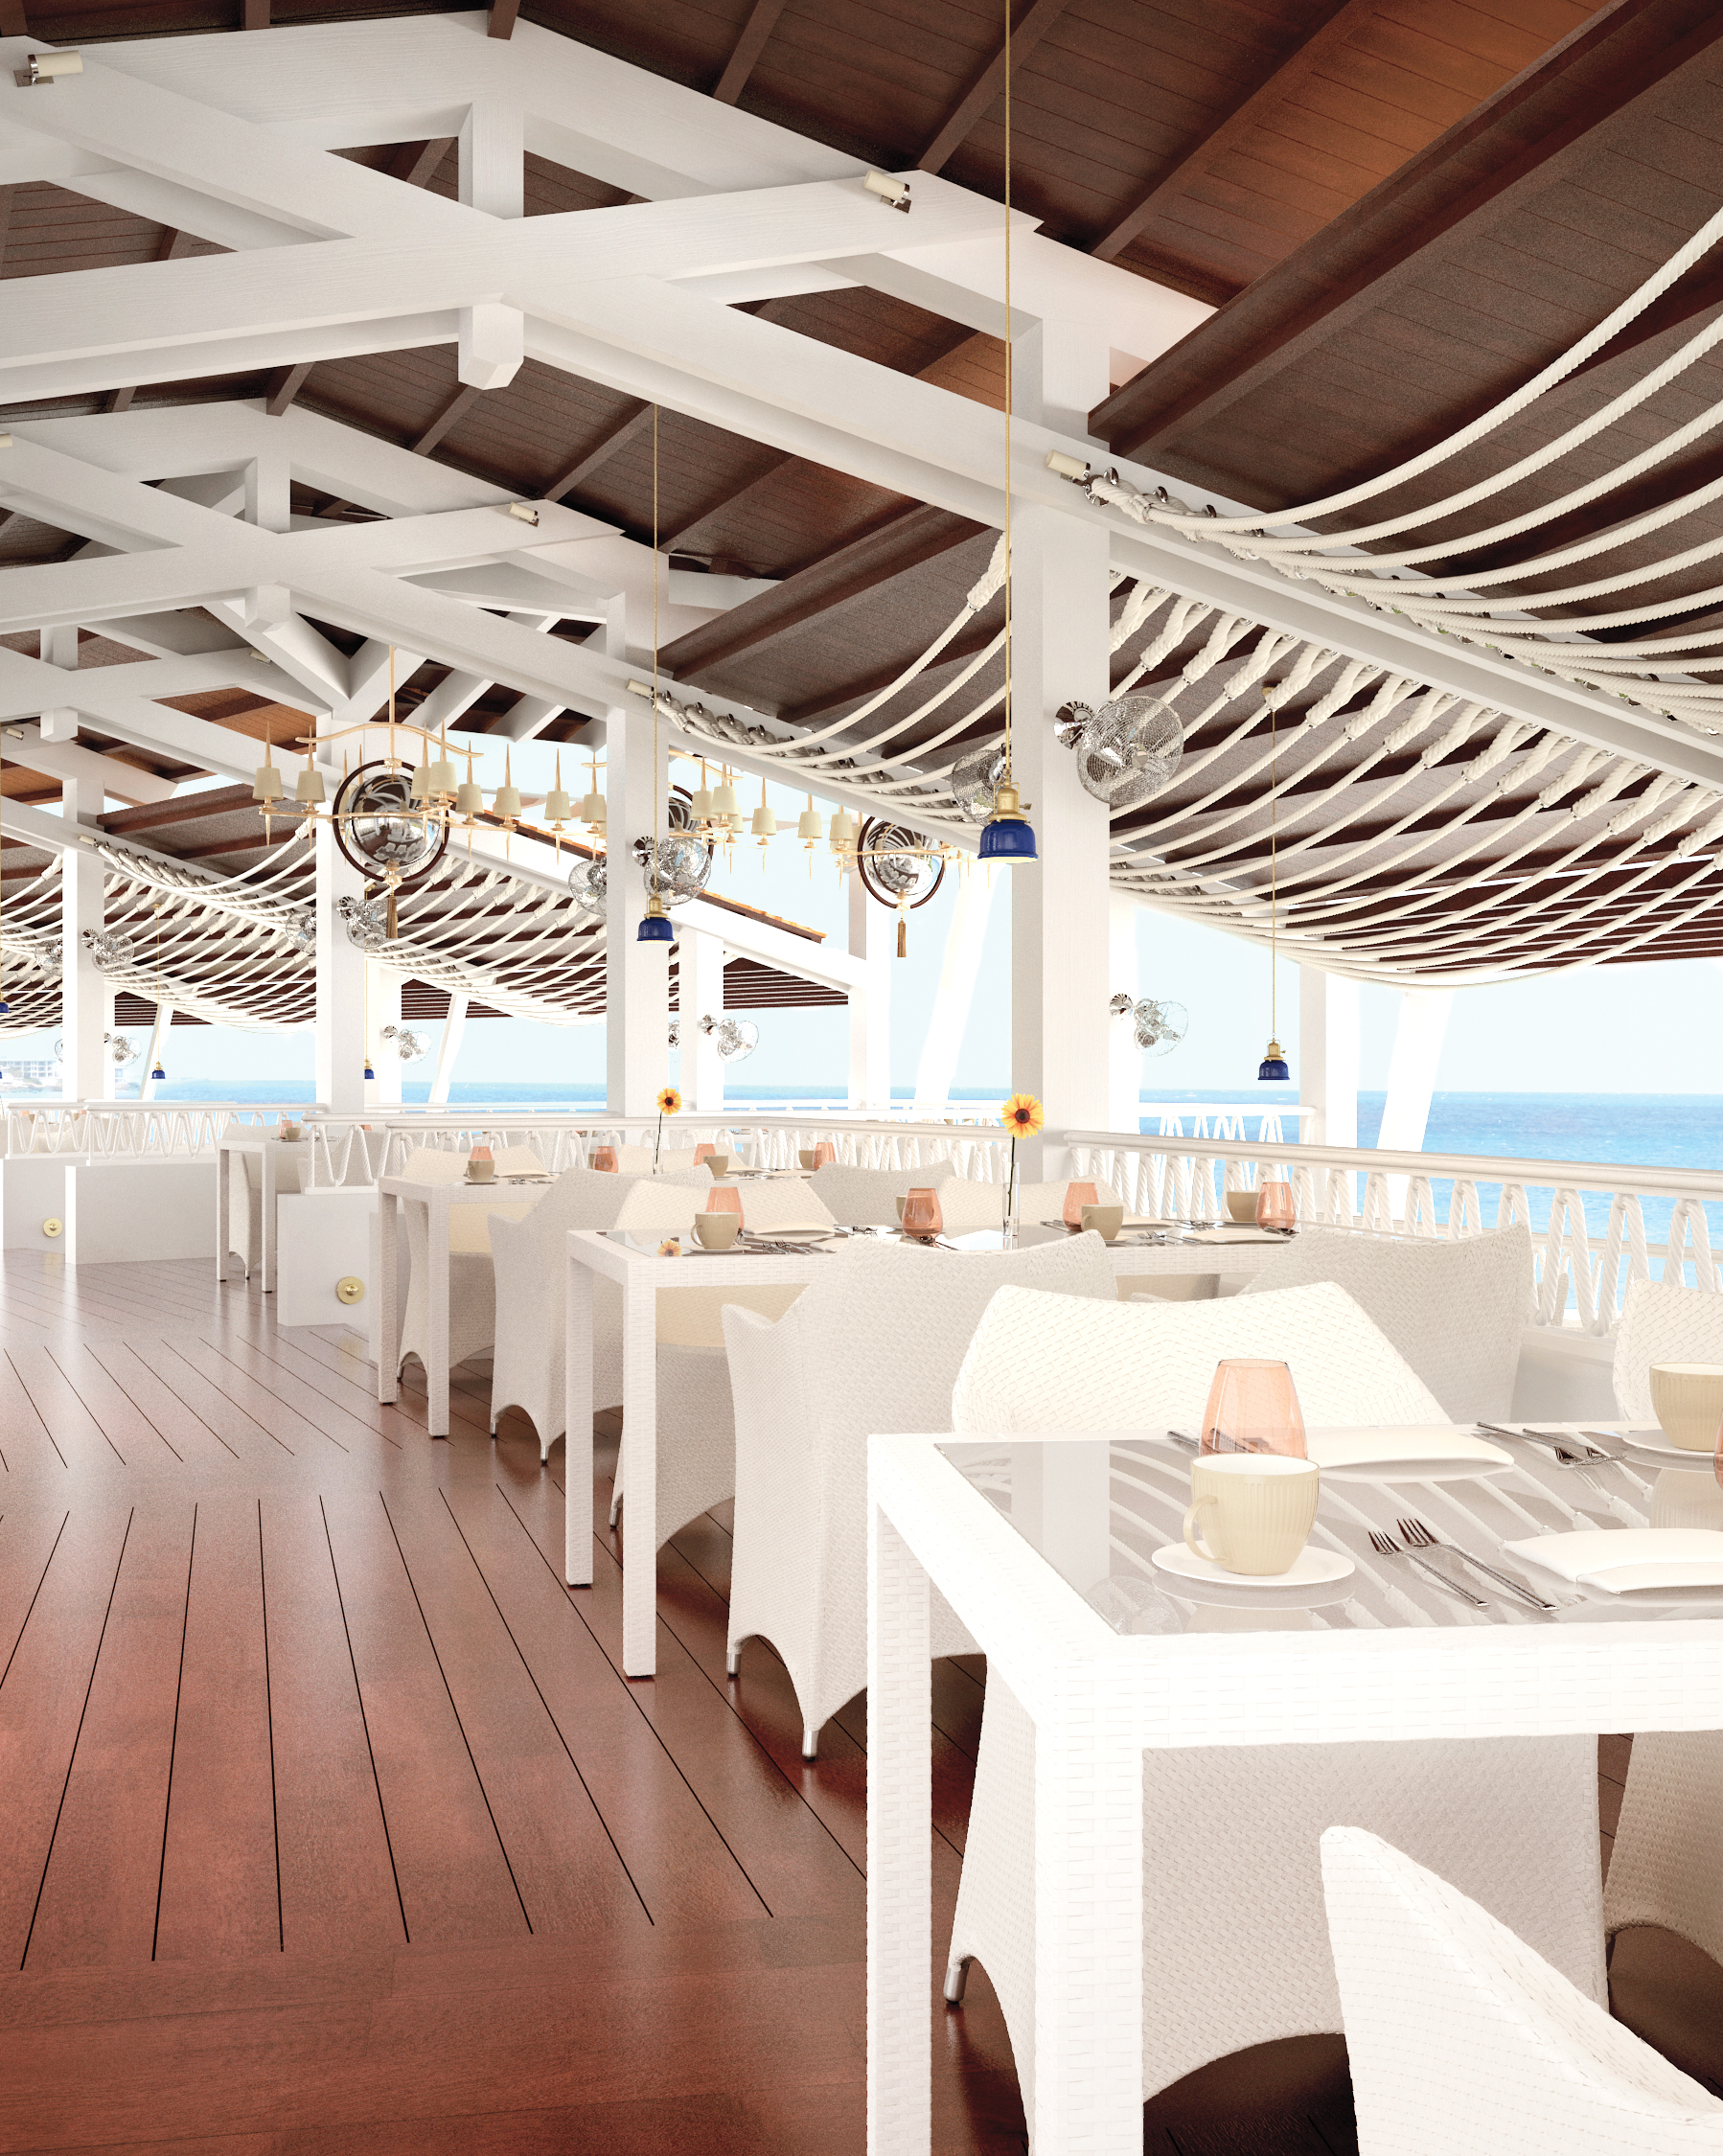 restaurant-beach-ds111324.jpg